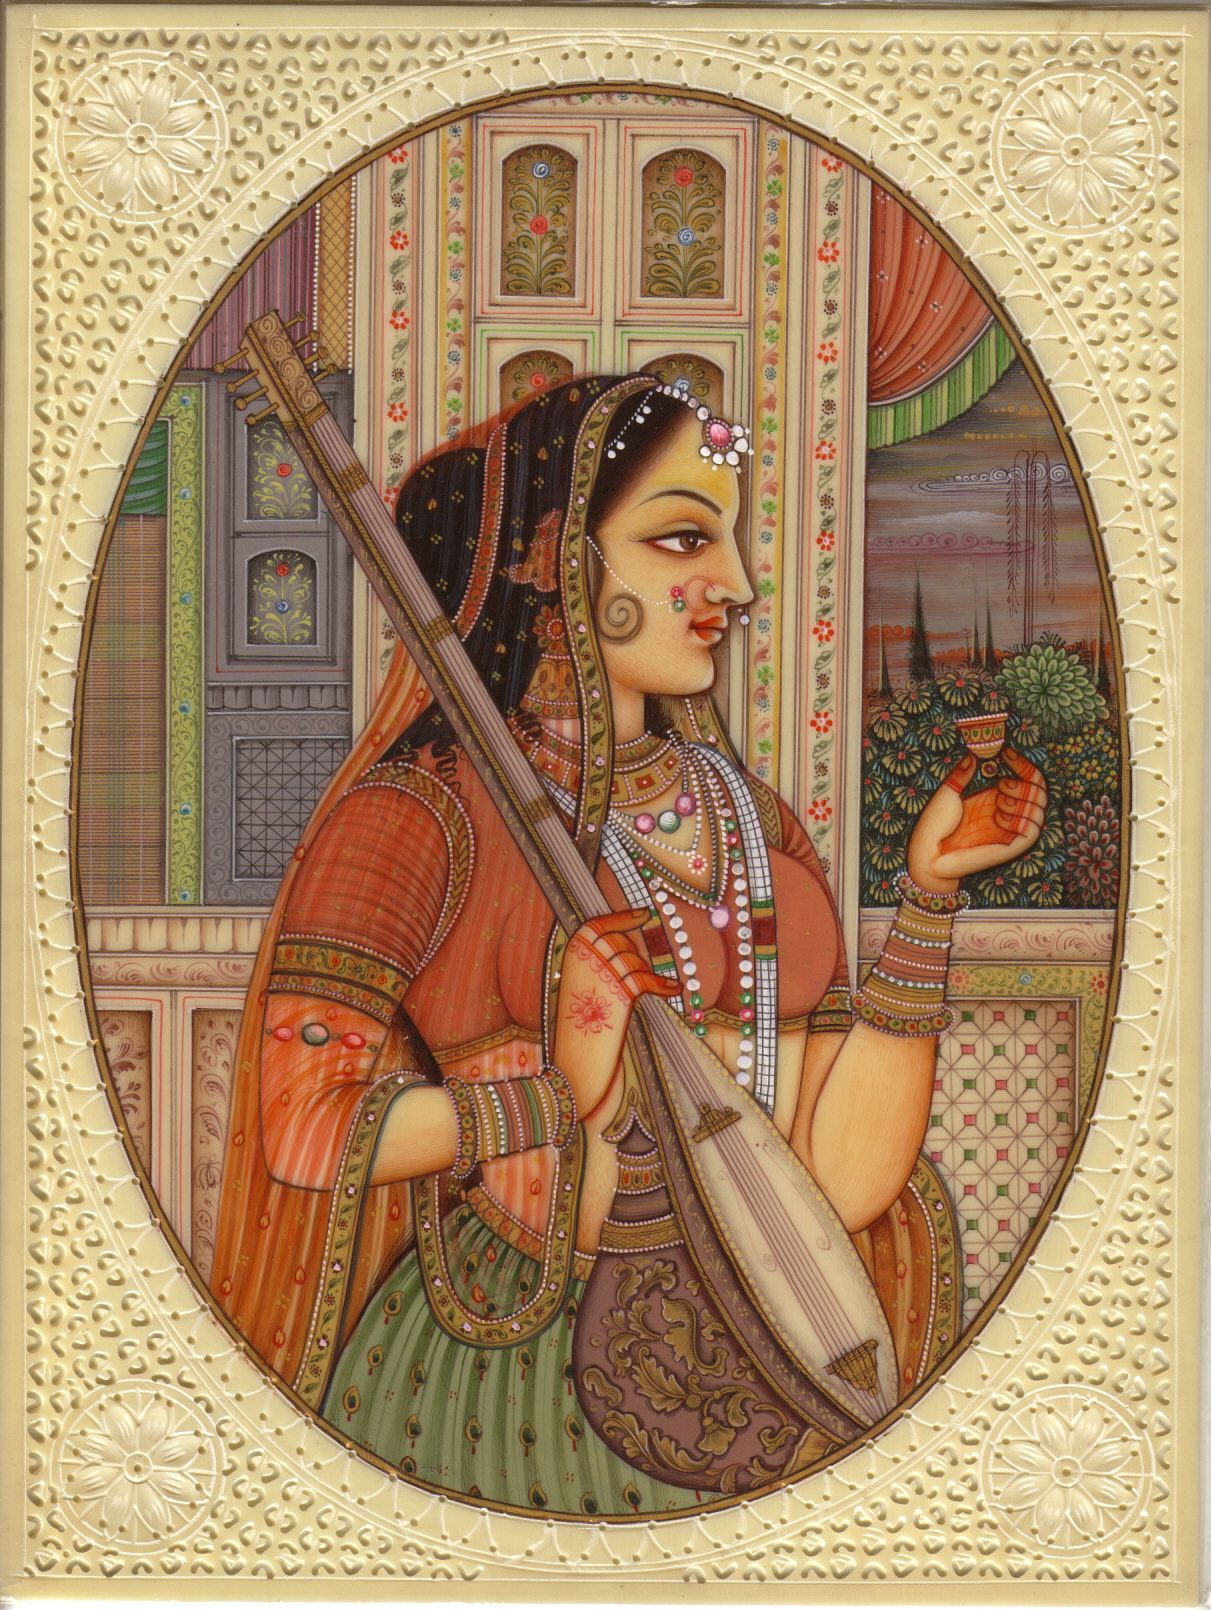 Indian Miniature Painting Rajasthani Princess Handmade